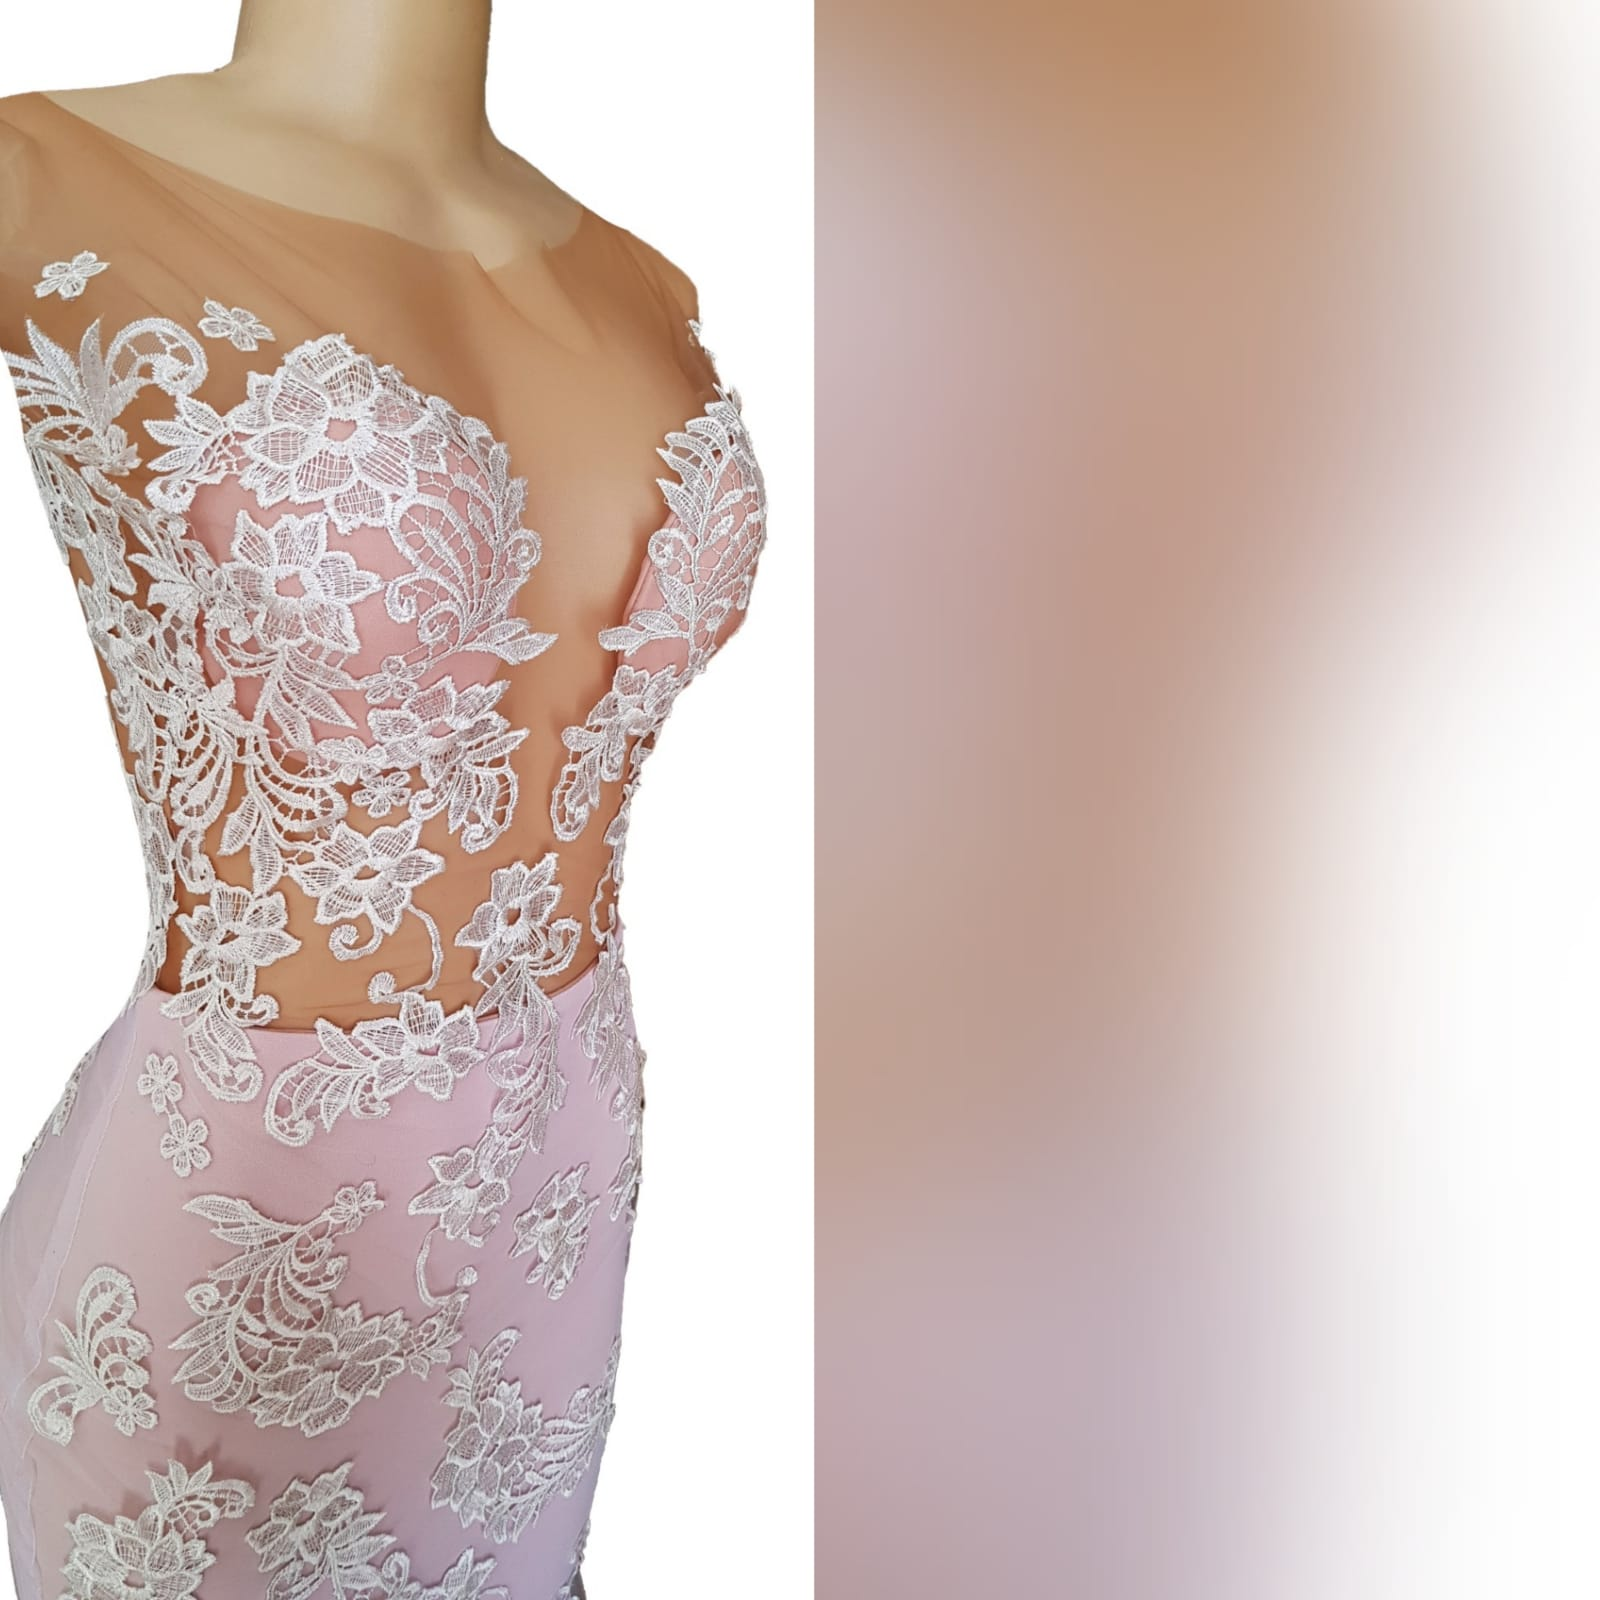 Pink and white lace soft mermaid prom dress 7 pink and white lace soft mermaid prom dress with an illusion bodice detailed with lace, an illusion open back. Bottom with an overlayer of tulle detailed with lace and a train.